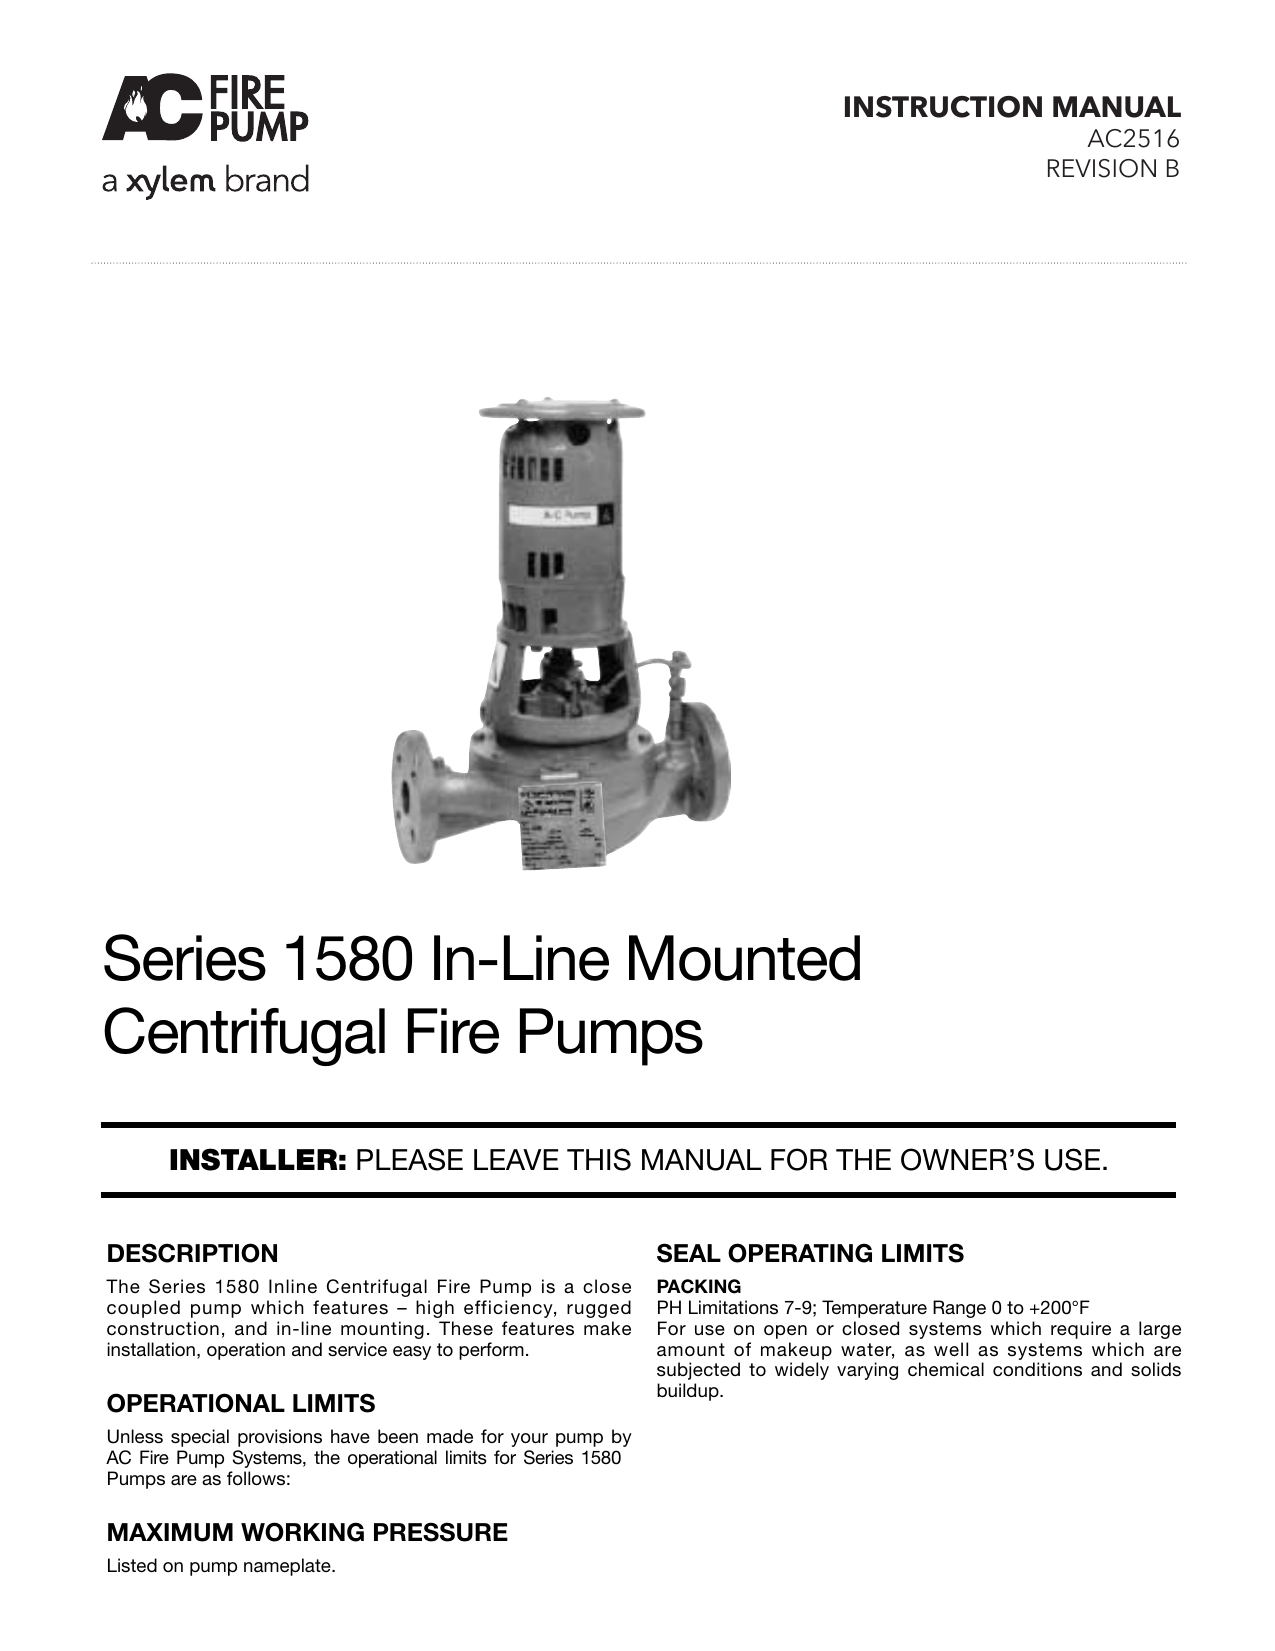 AC2516B Series 1580 In-Line Mounted Centrifugal Fire Pumps